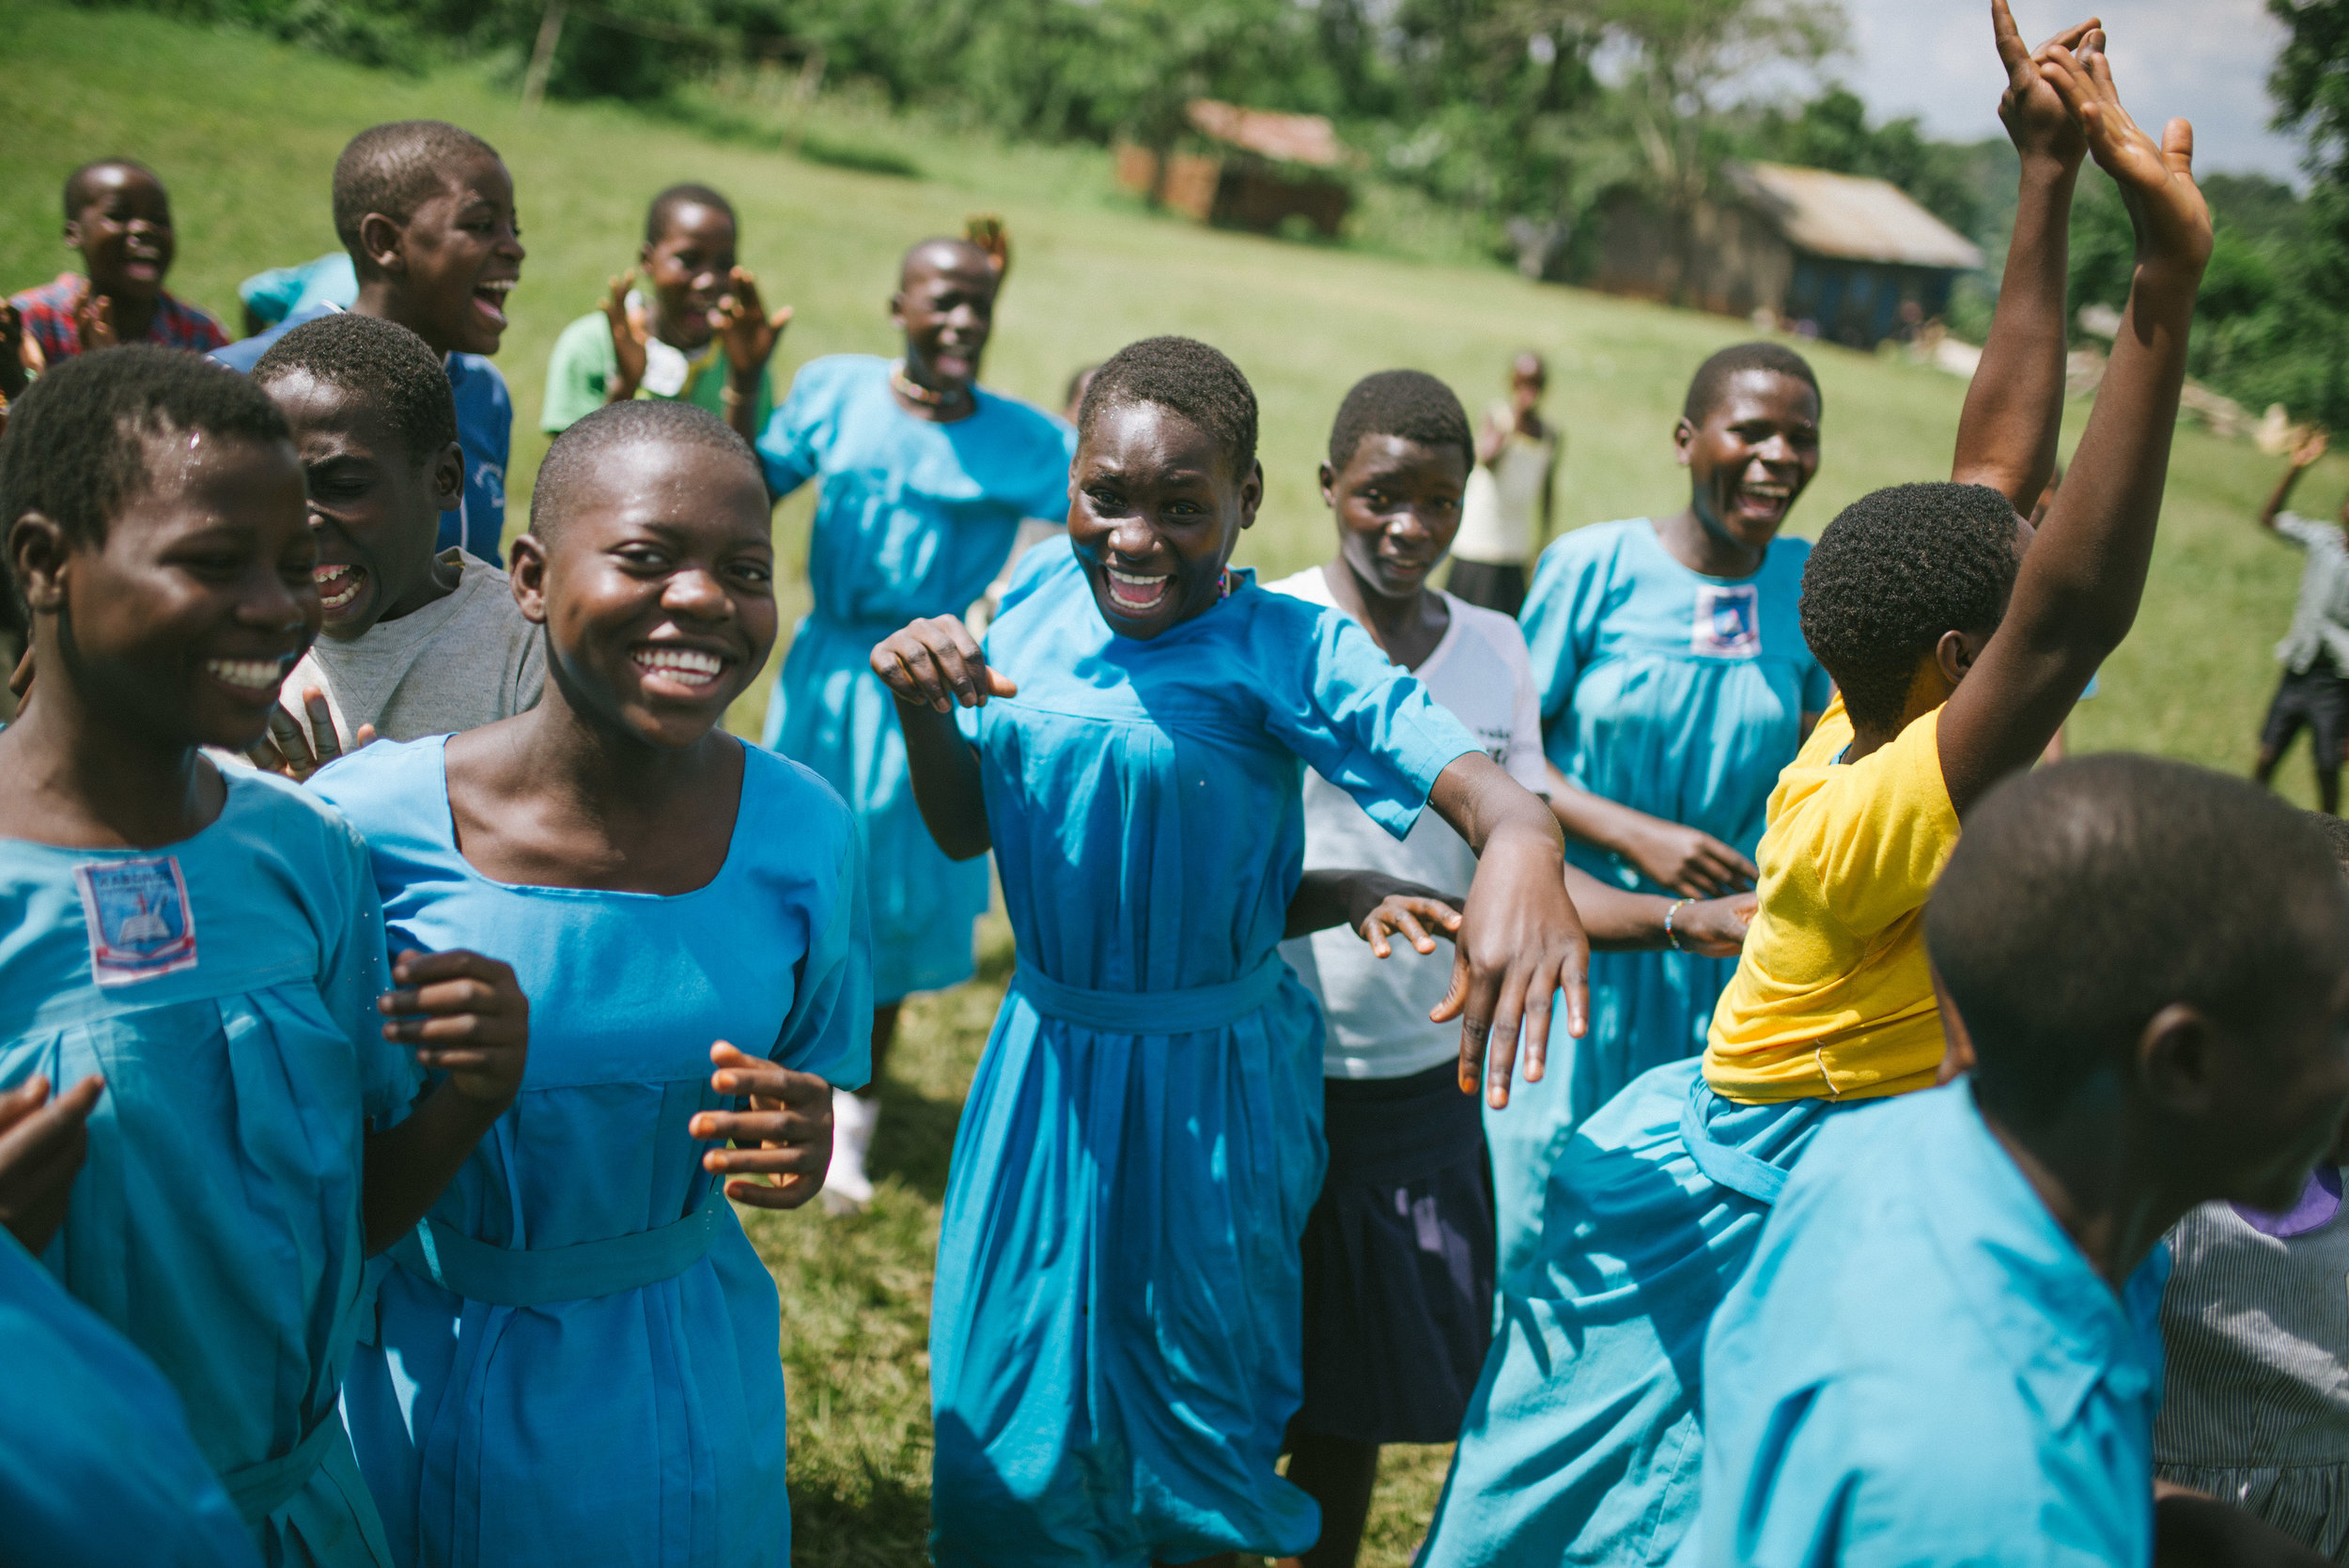 This year, each of the girls aged fourth grade and up at St. John's Primary received their own supply of reusable sanitary pads--a gift that does more than meet a need, it also keeps them in school.